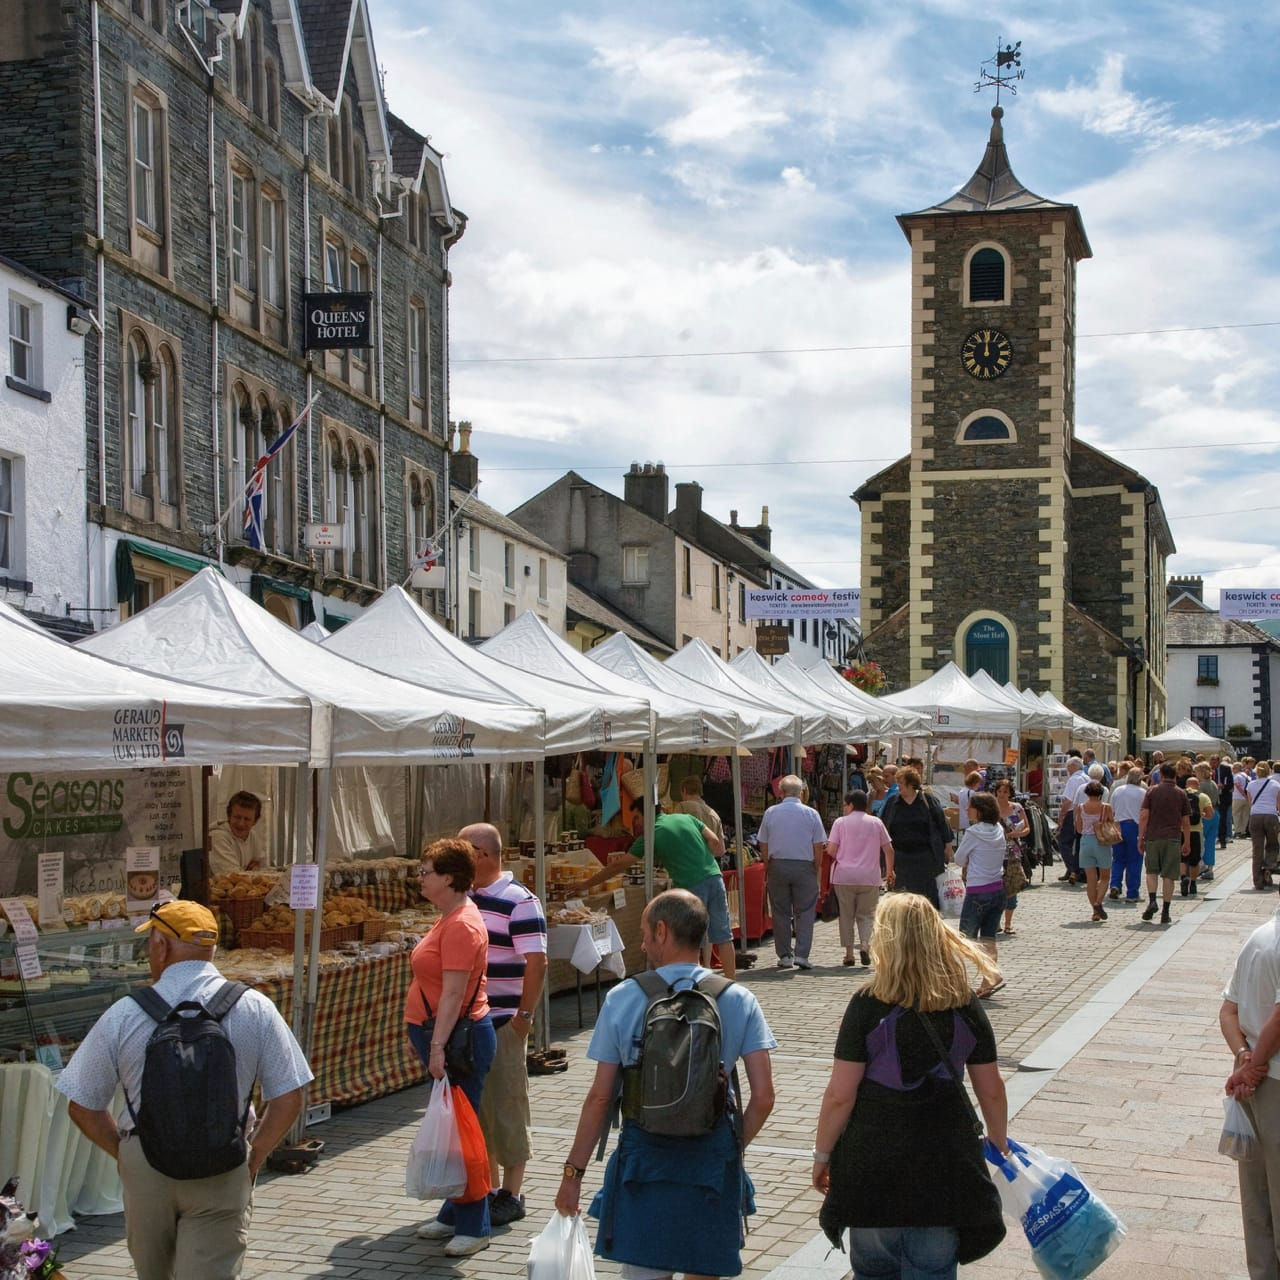 Keswick outdoor market on a sunny day, with Moot Hall at its head. Photo by DAVID ILIFF. License: CC BY-SA 3.0